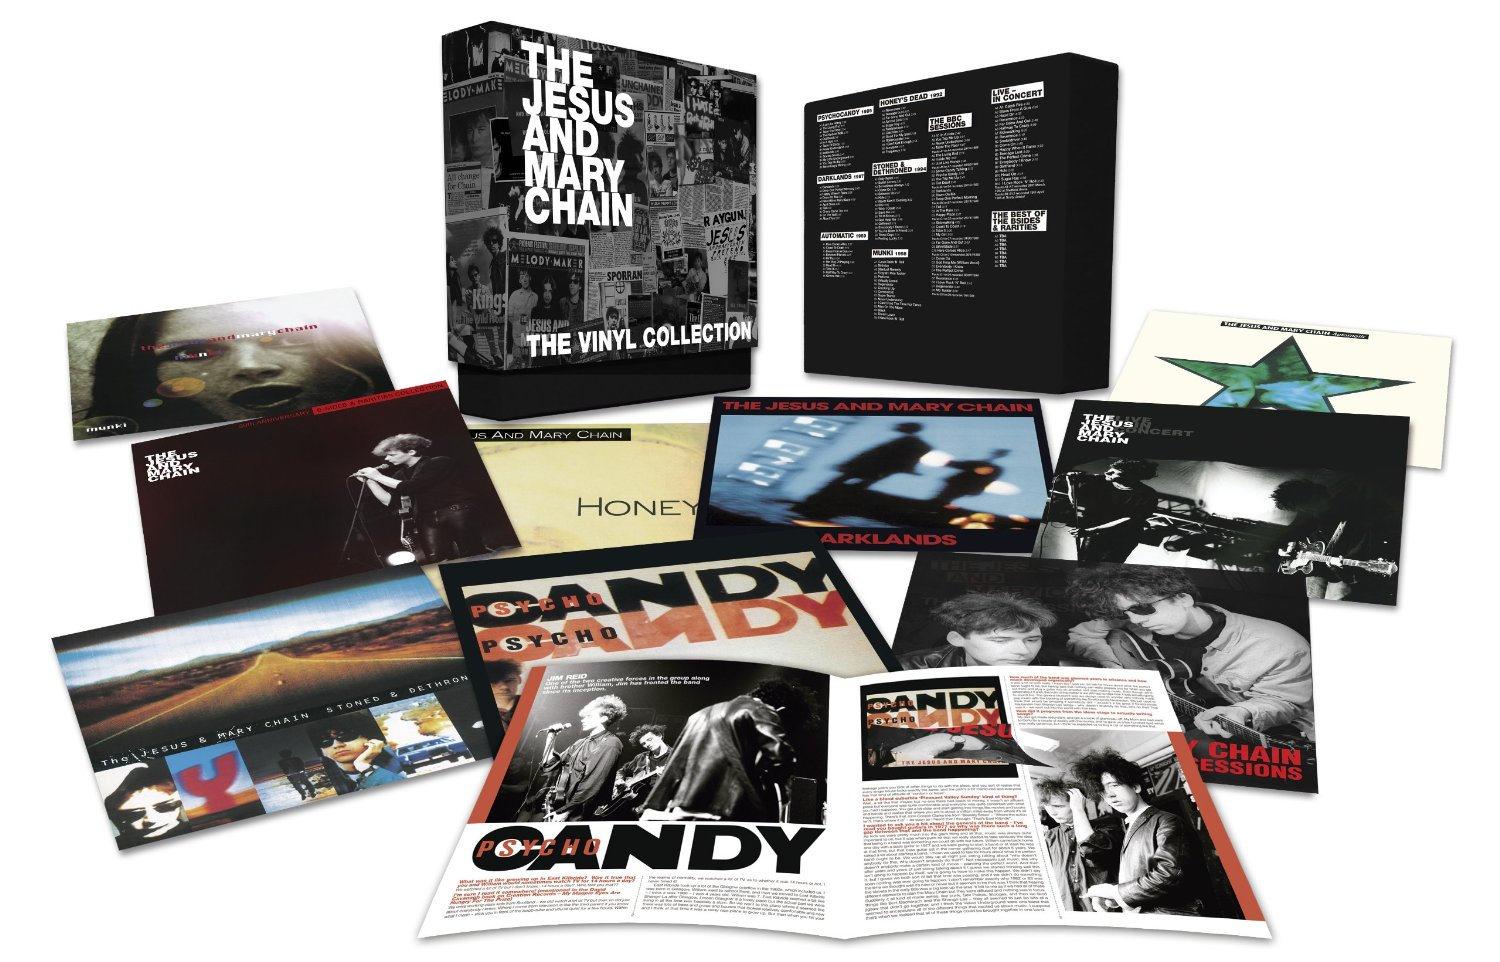 jesus-and-mary-chain-vinyl-collection-rocklab